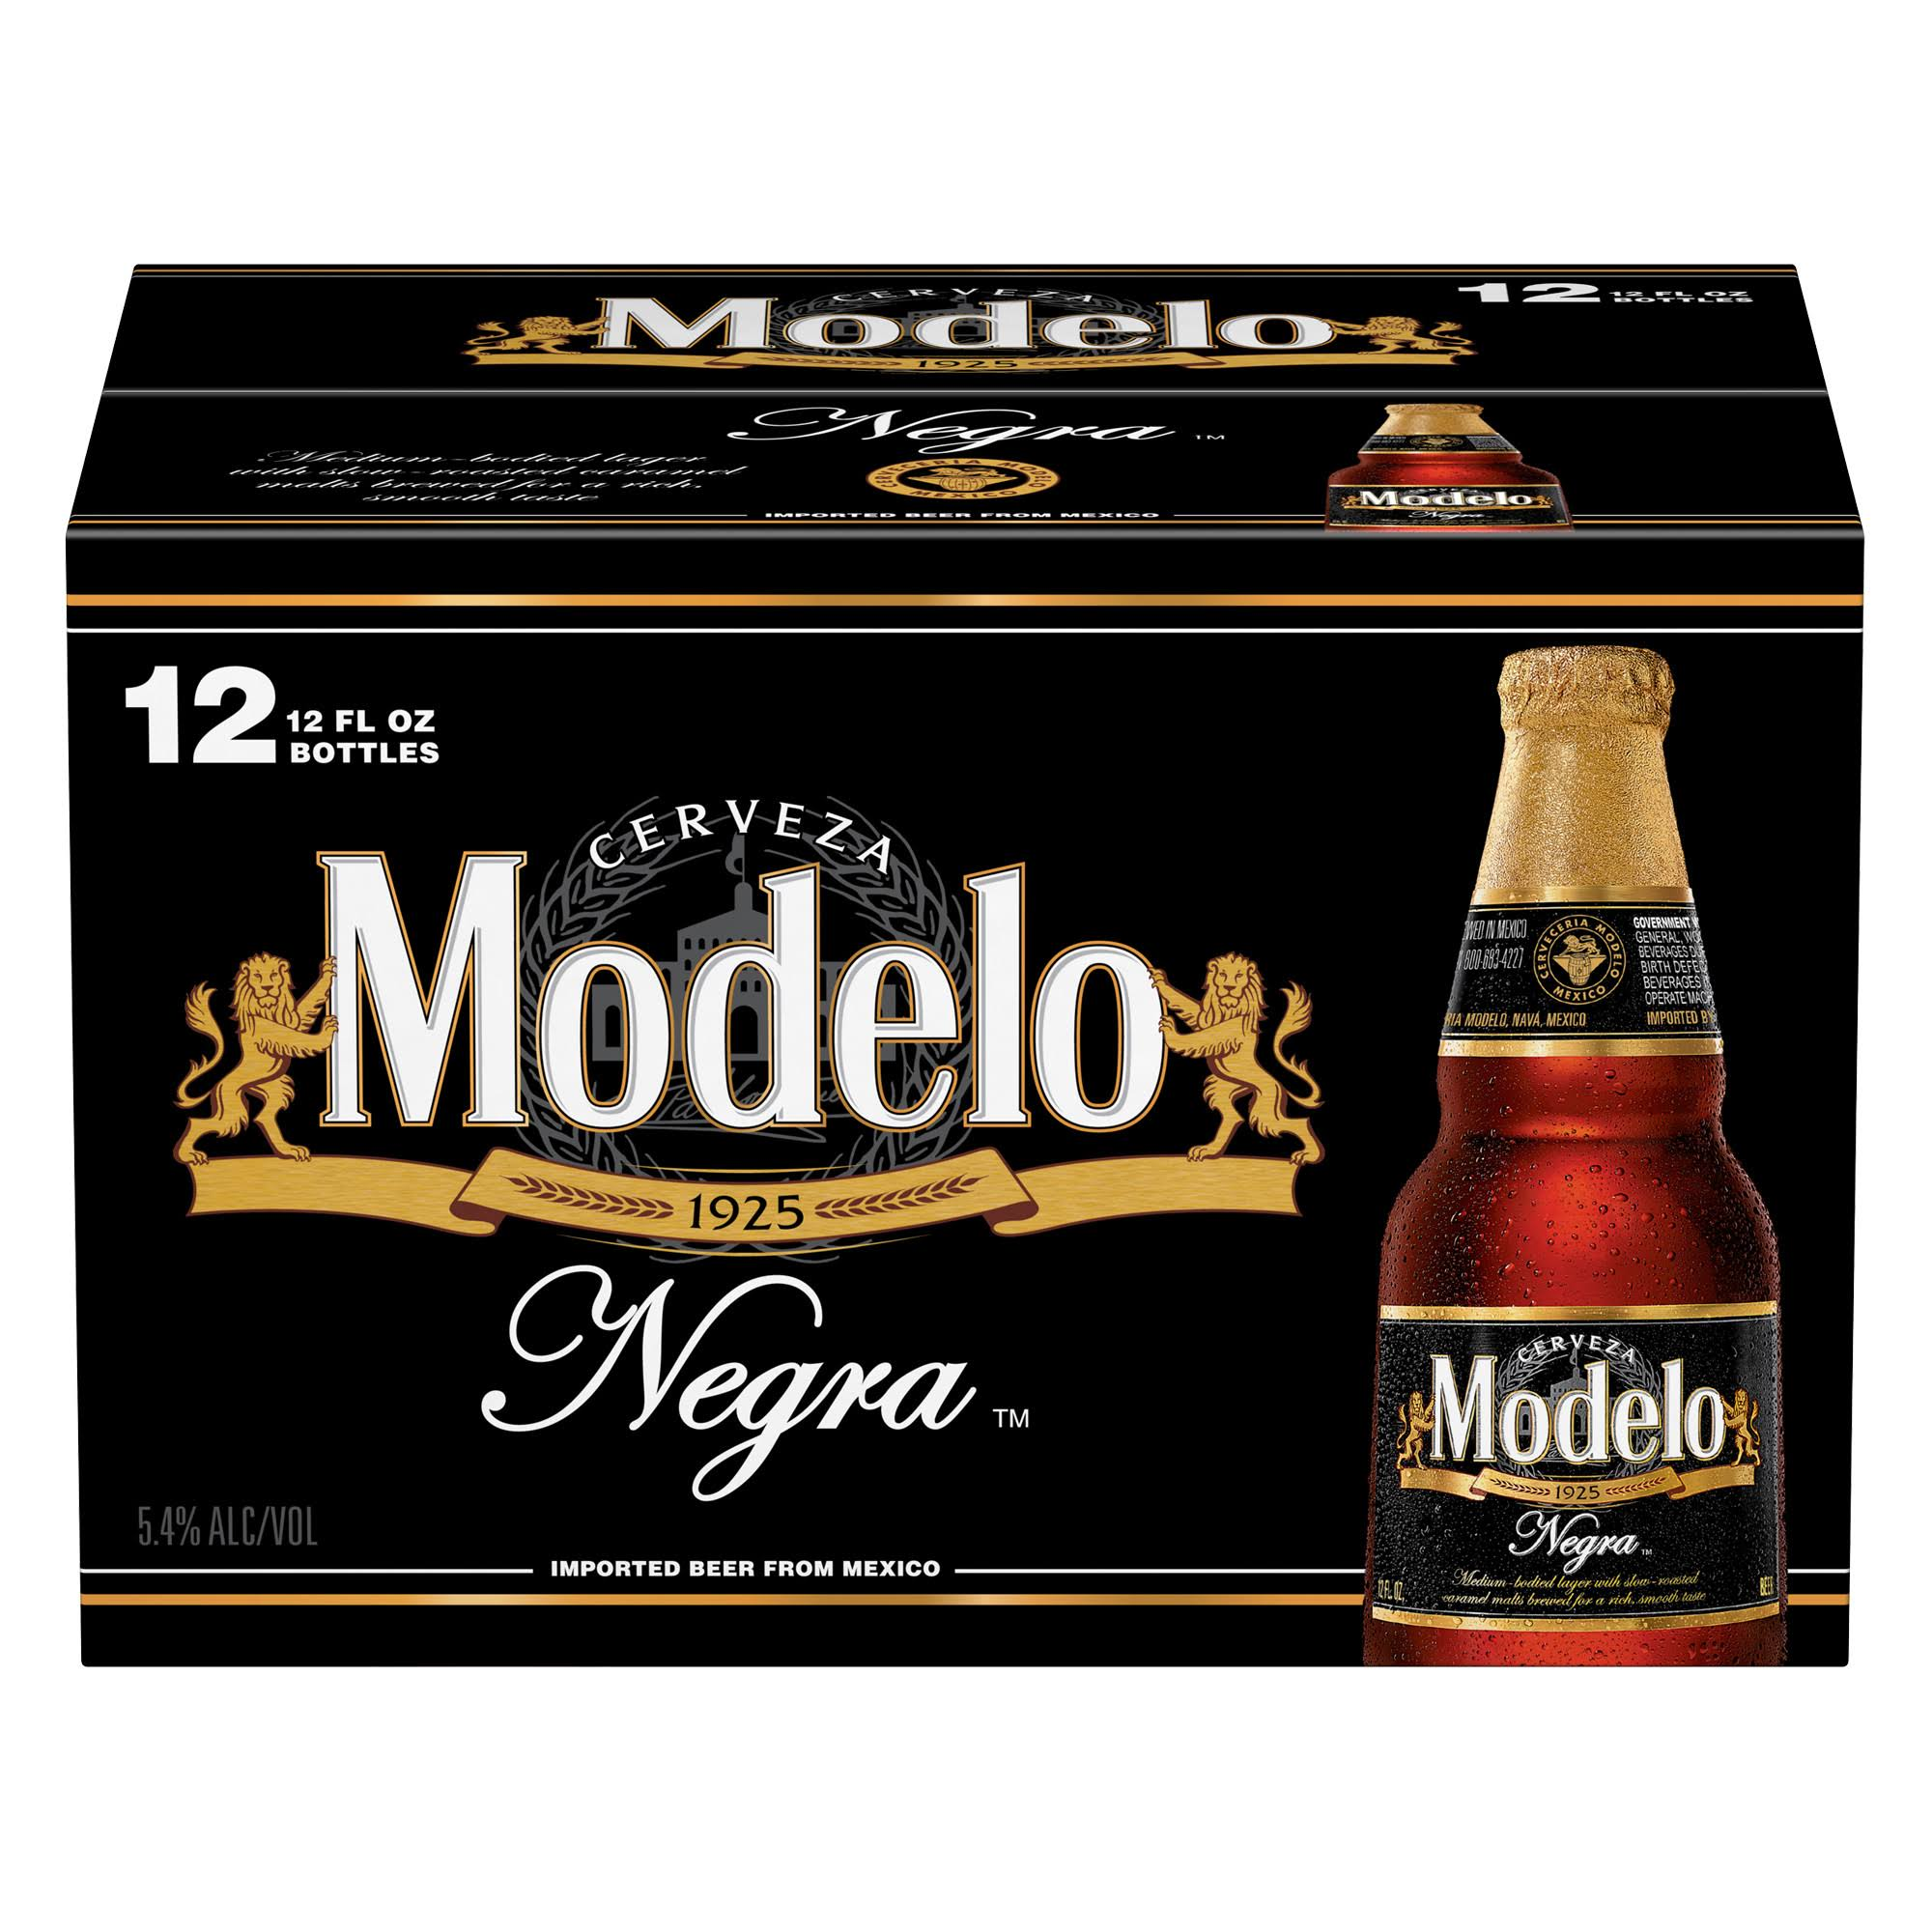 Modelo Beer, Negra - 12 pack, 12 fl oz bottles